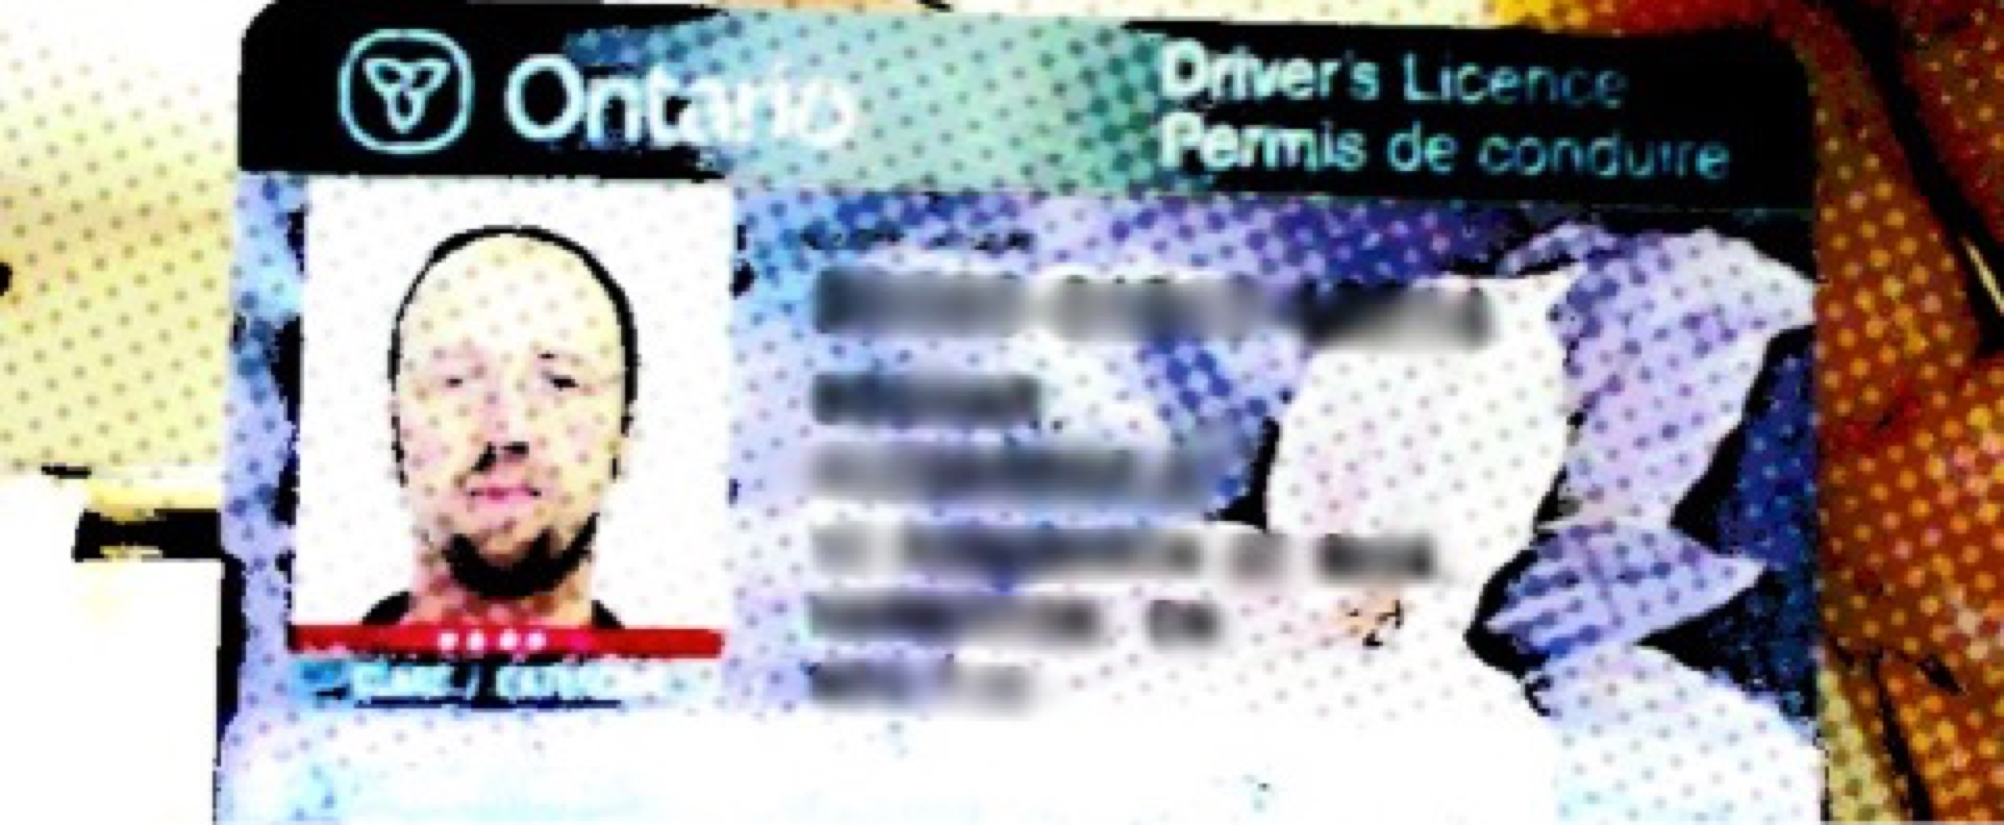 Driver's License 2 Image